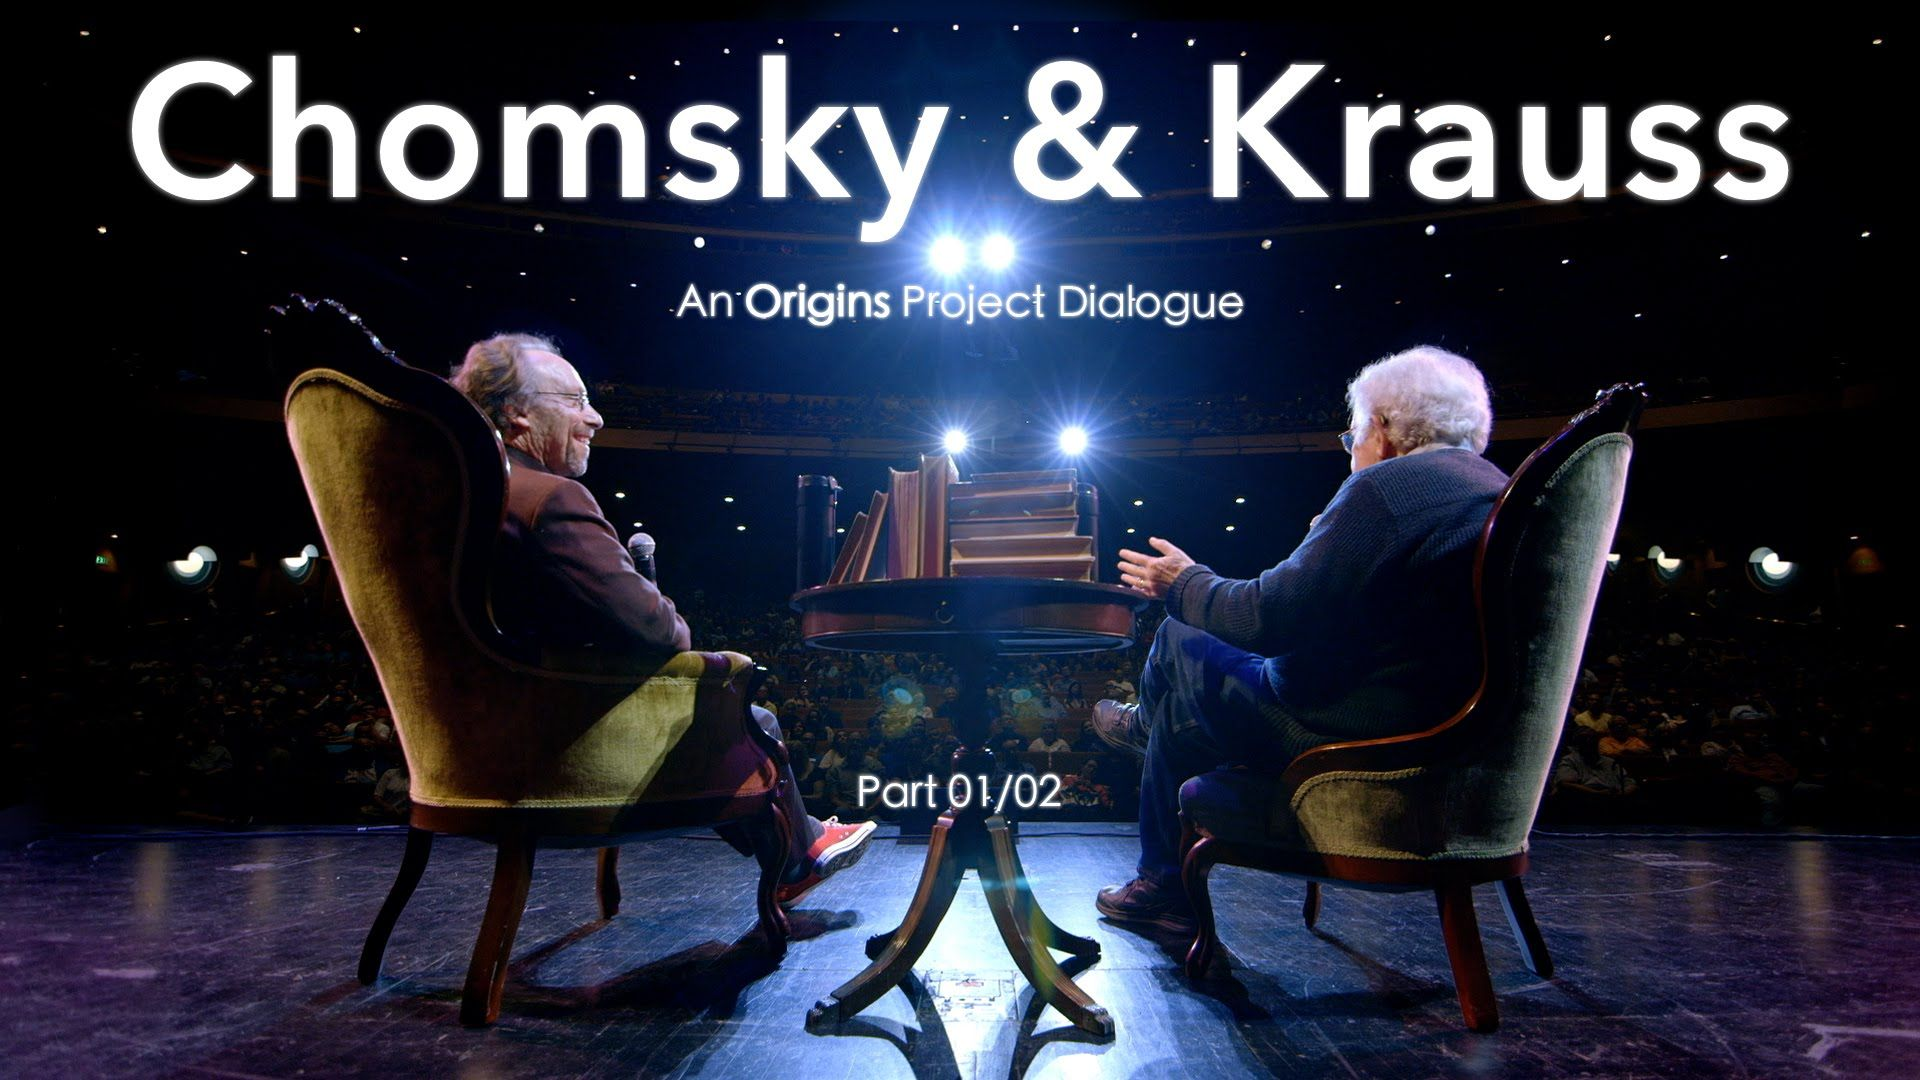 Join Intellectual Giant Noam Chomsky And Noted Physicist Public Lawrence Kraus For An Intimate Evening Of Juliu Caesar Act 2 Scene 1 Explanation Modern Translation One Summary